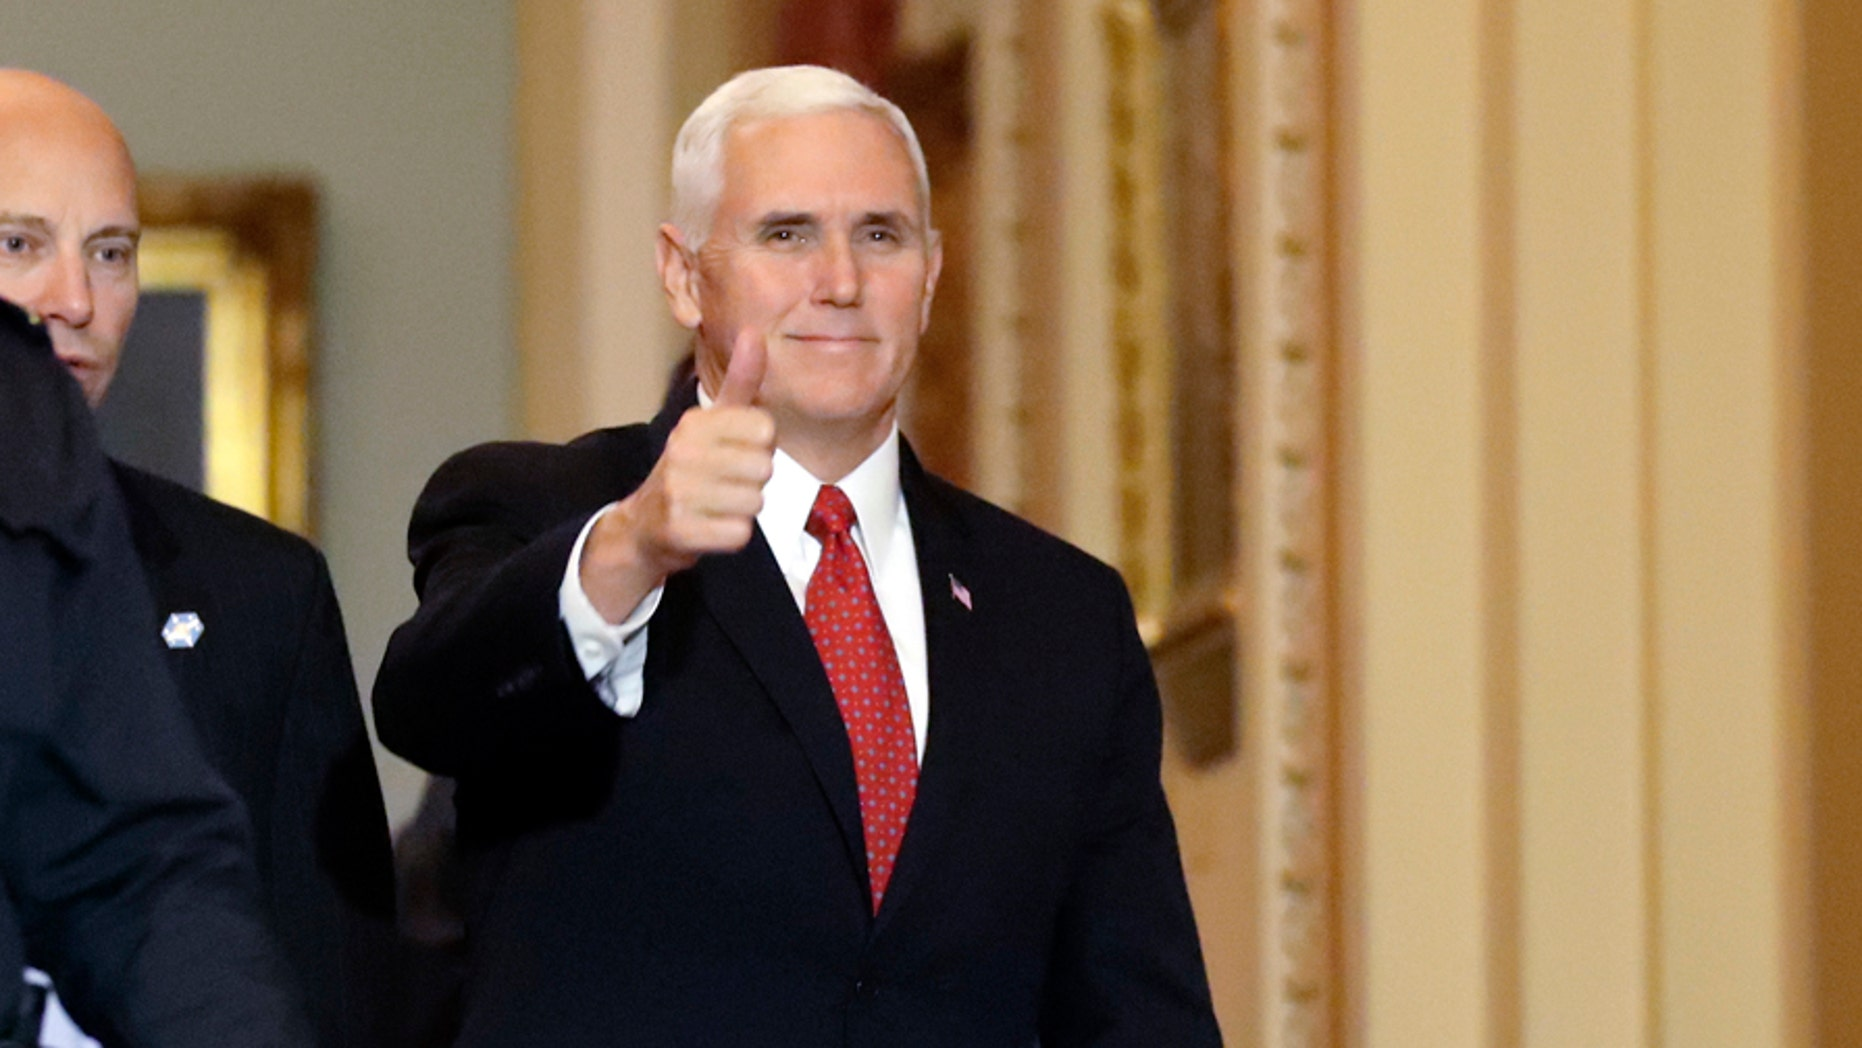 Vice President Mike Pence will lead the U.S. delegation for the 2018 Winter Olympics in Pyeongchang, South Korea next month.